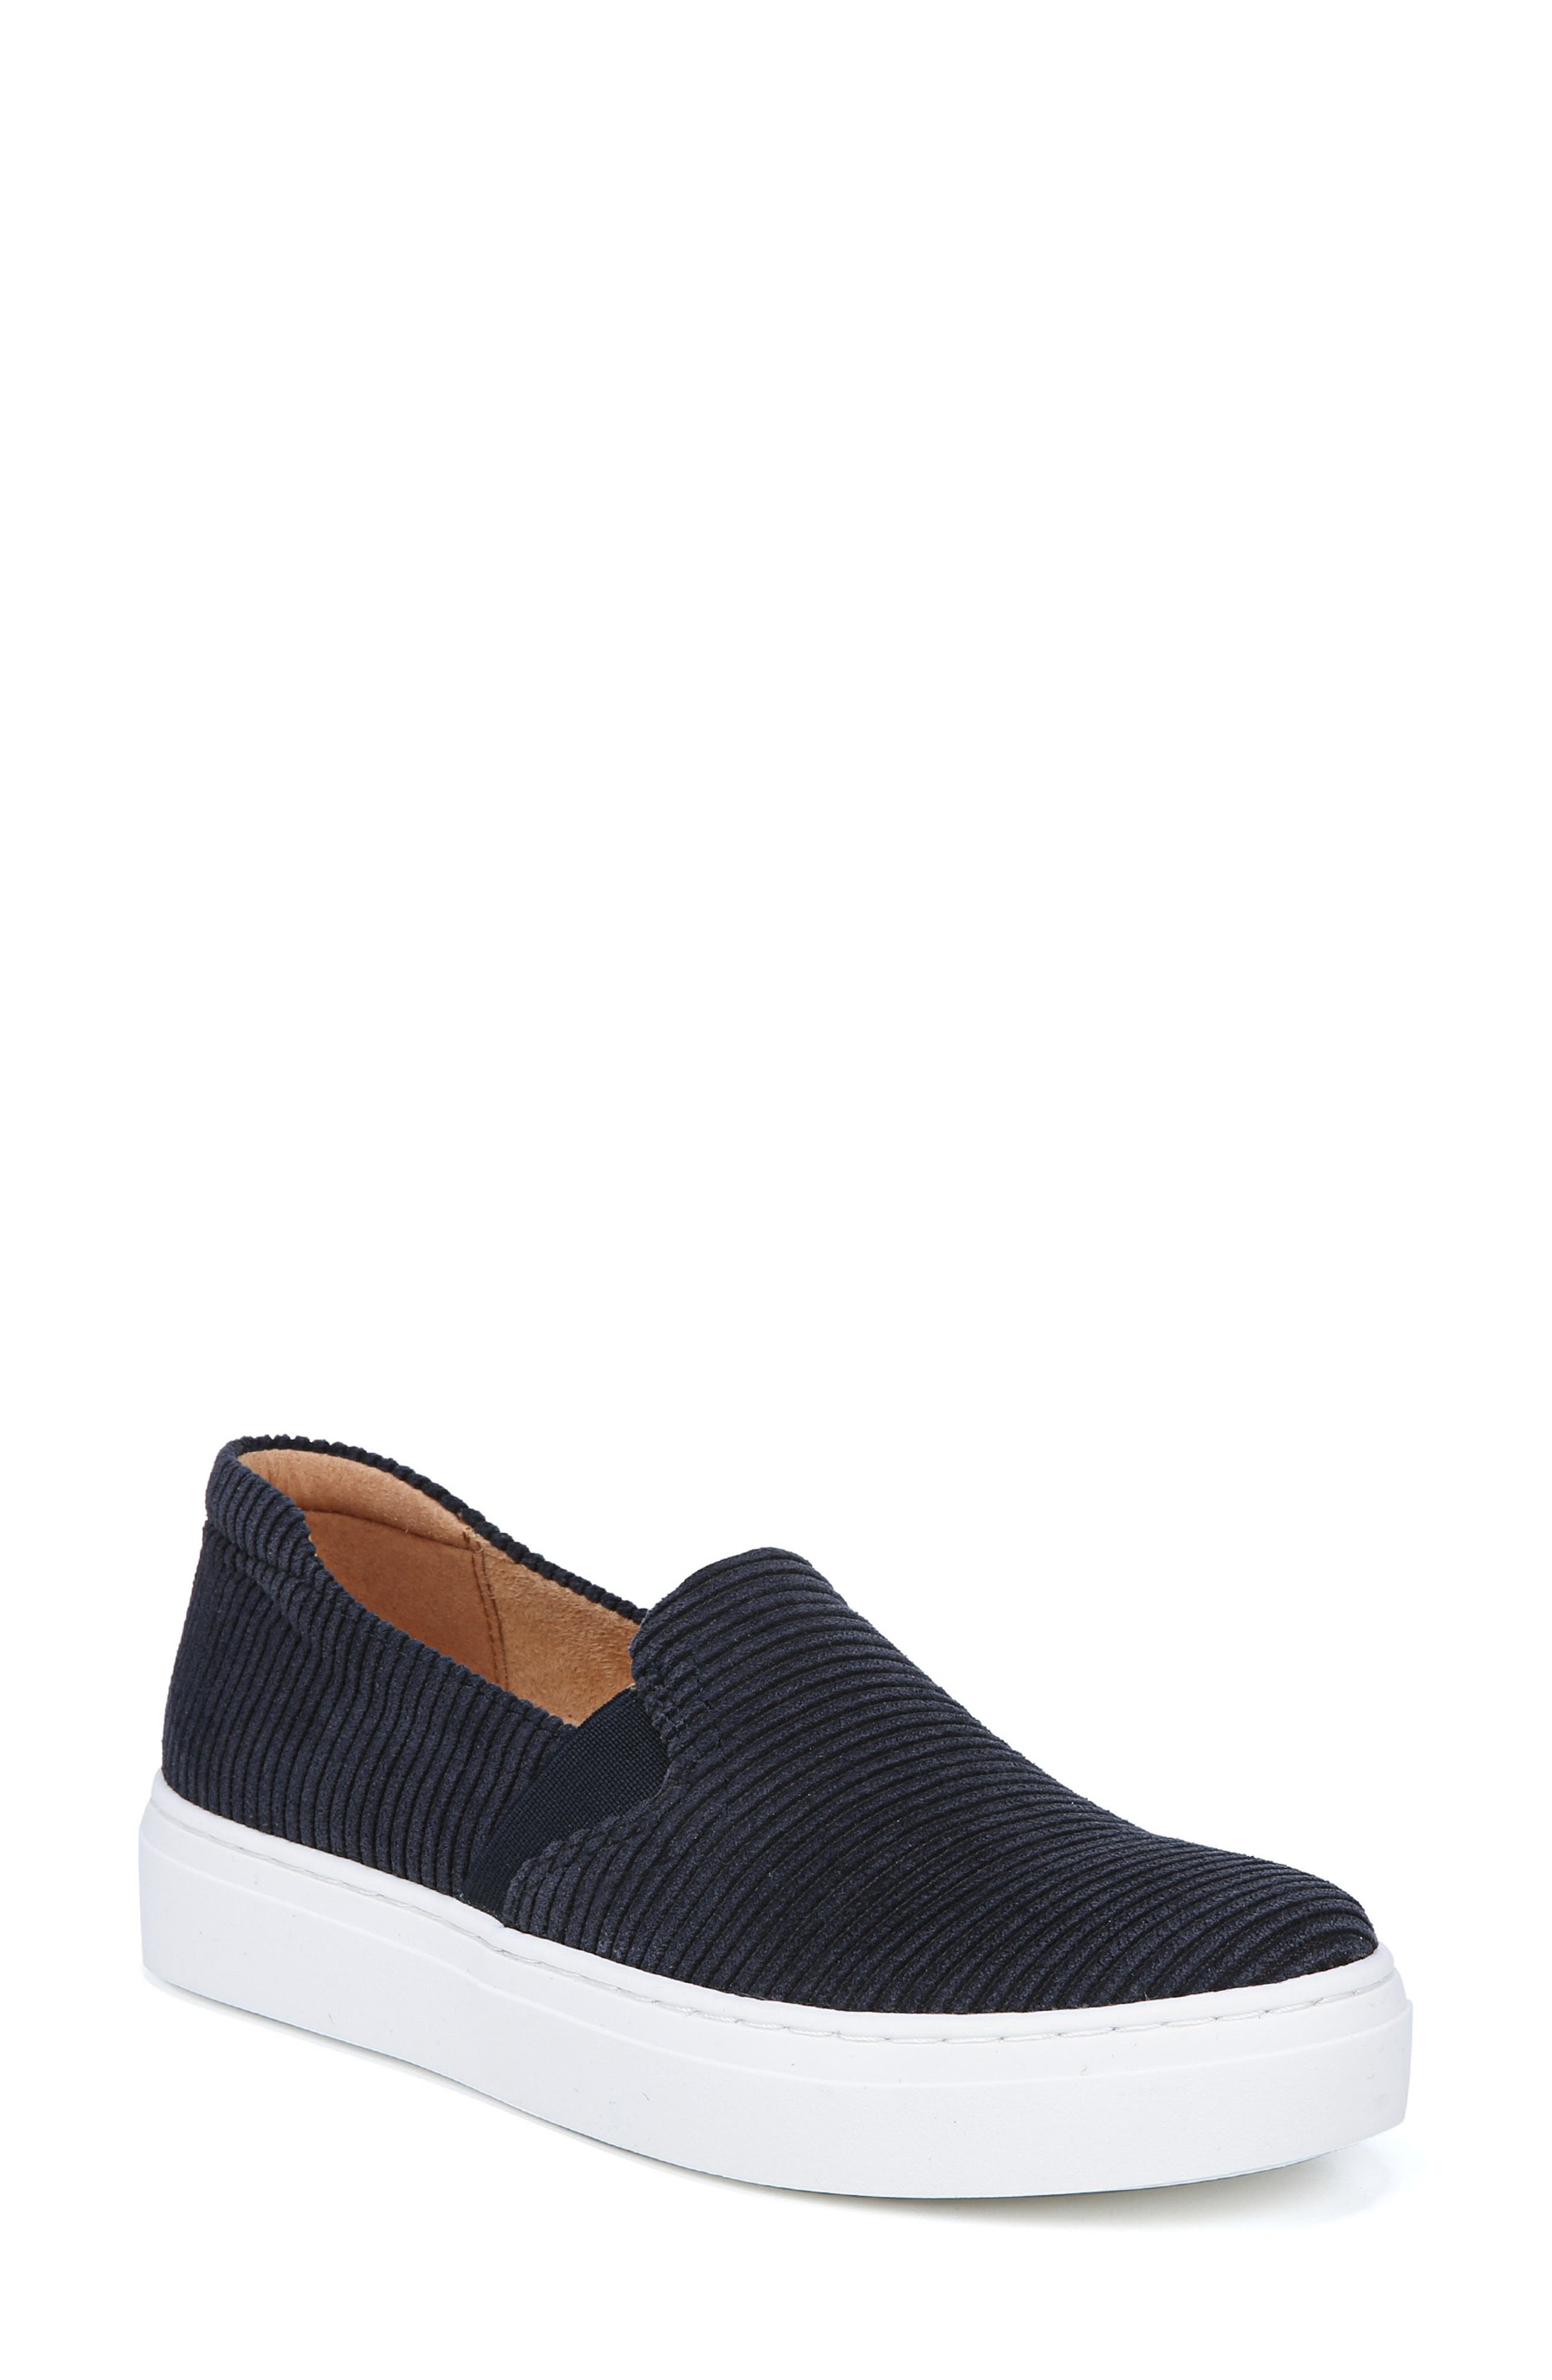 Naturalizer Carly Slip-On Sneaker- Blue